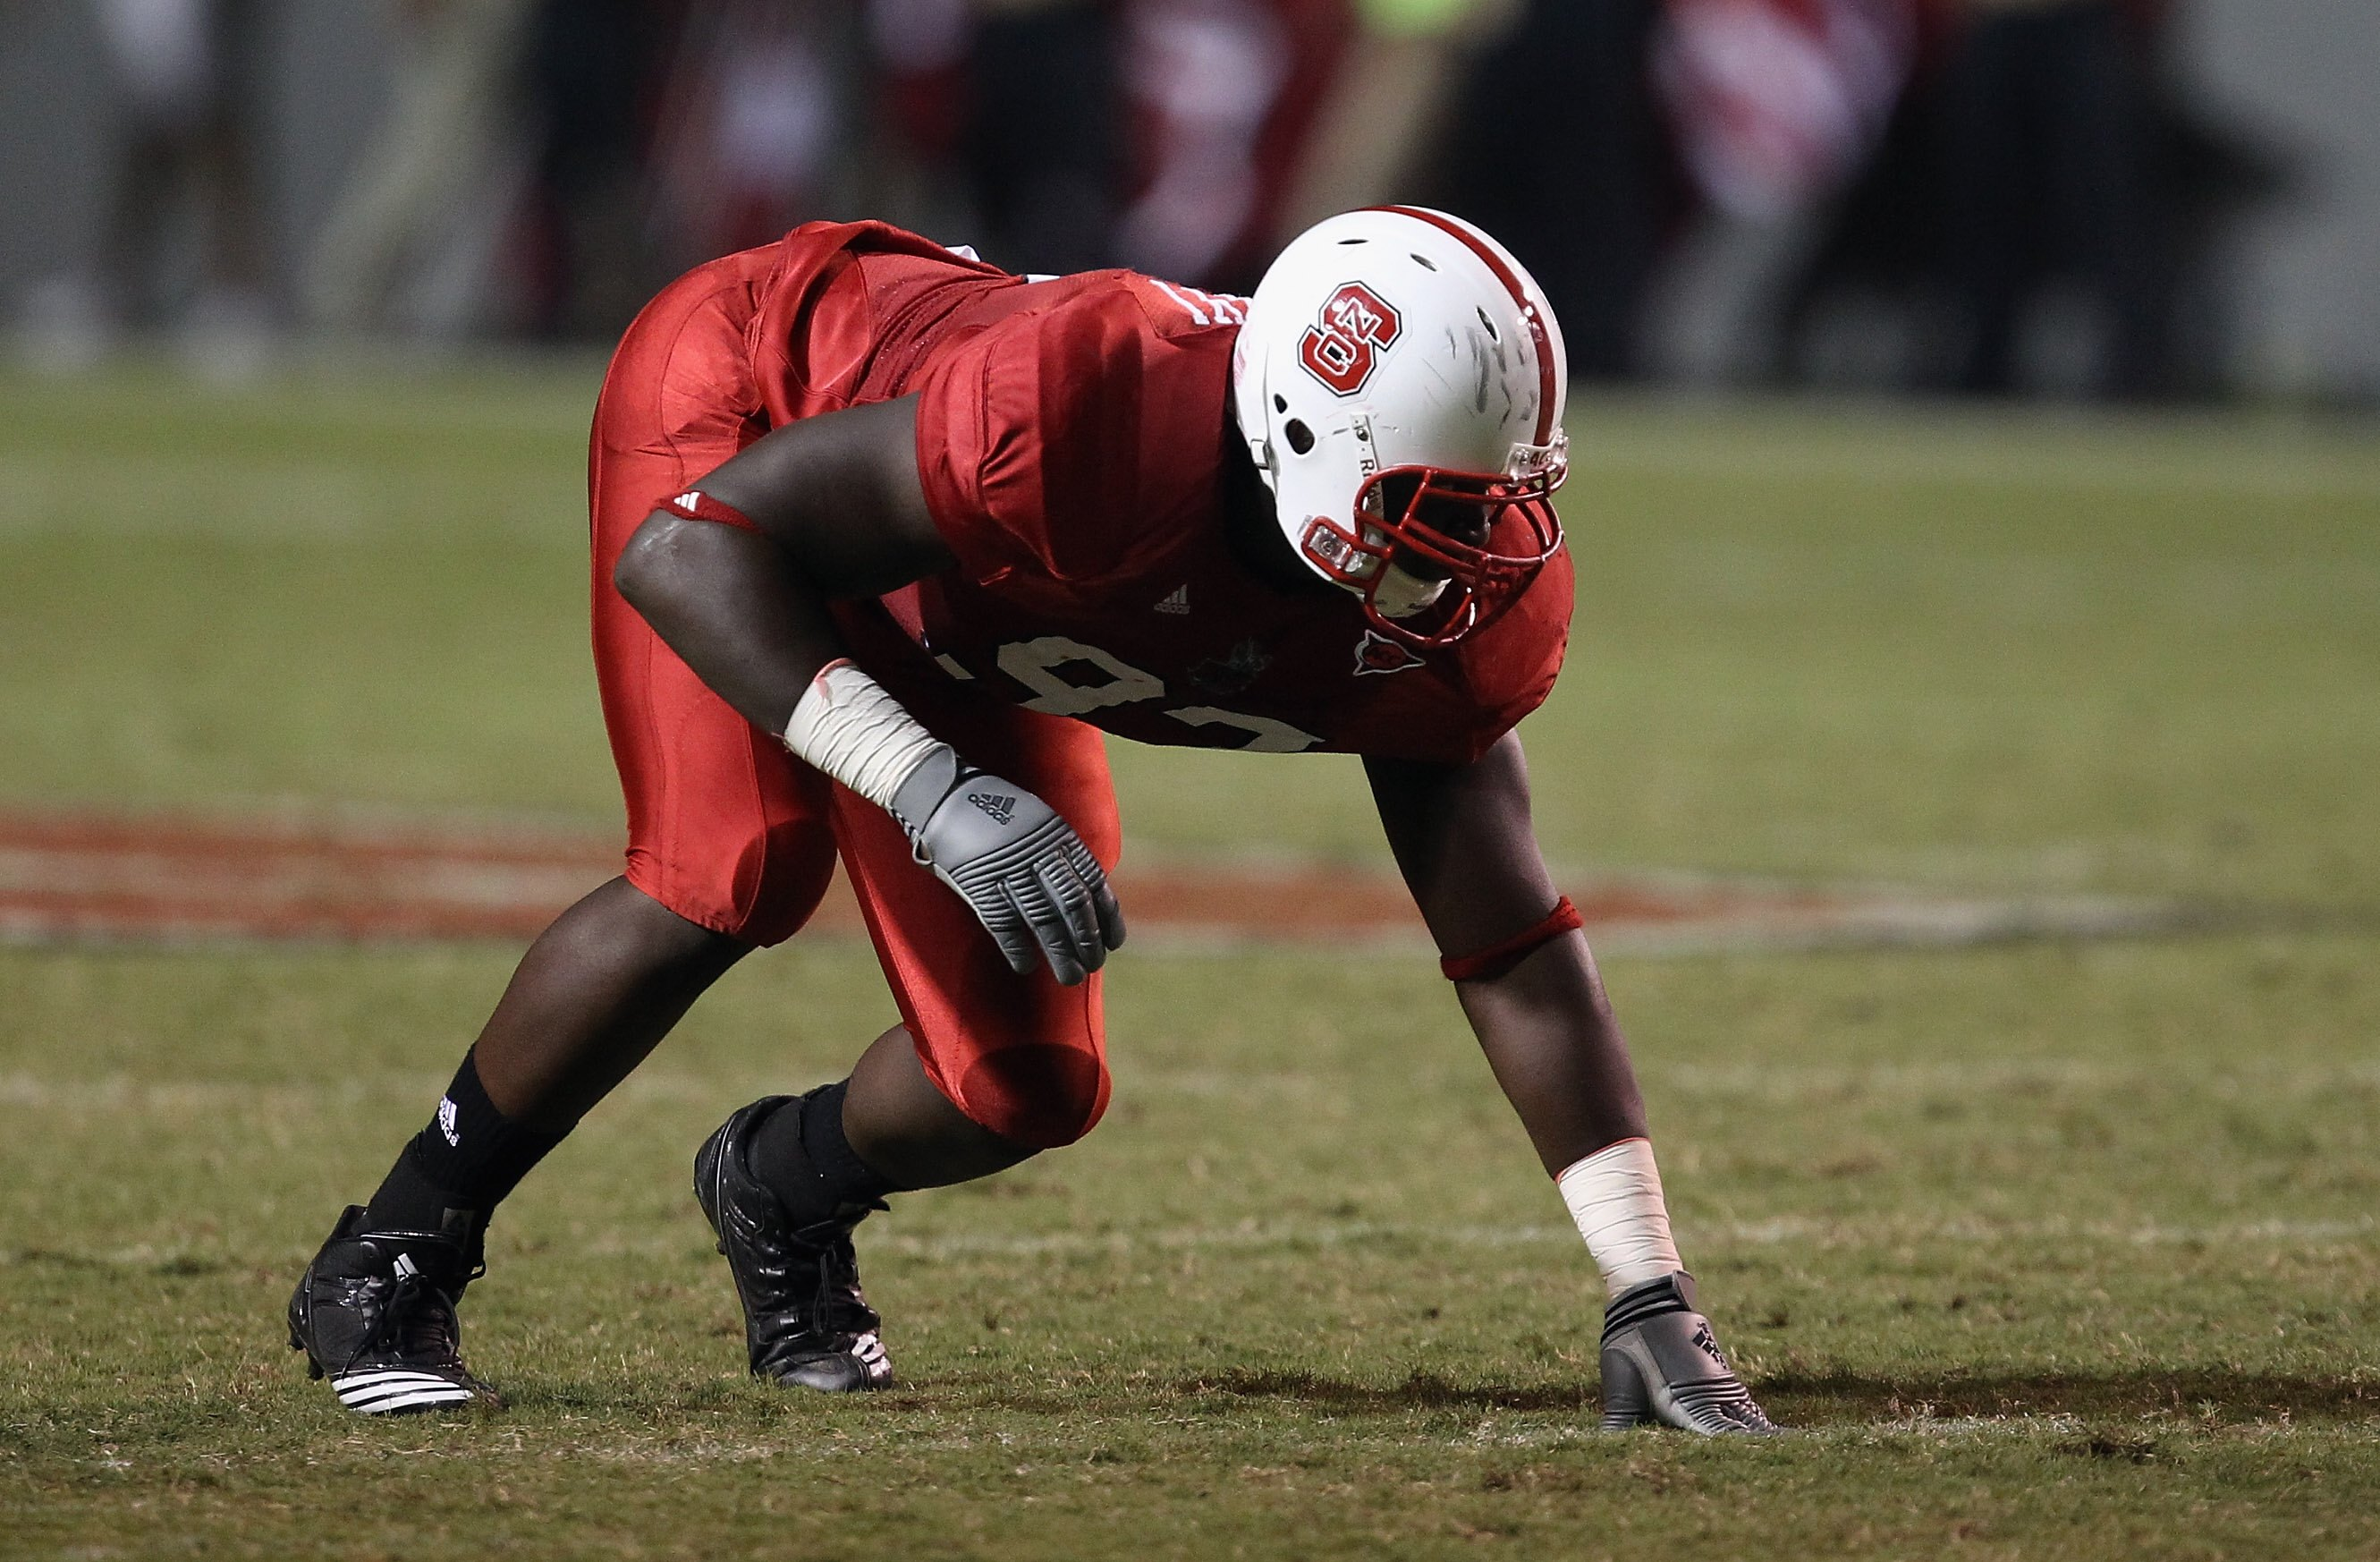 RALEIGH, NC - SEPTEMBER 16:  David Akinniyi #97 of the North Carolina State Wolfpack during their game at Carter-Finley Stadium on September 16, 2010 in Raleigh, North Carolina.  (Photo by Streeter Lecka/Getty Images)